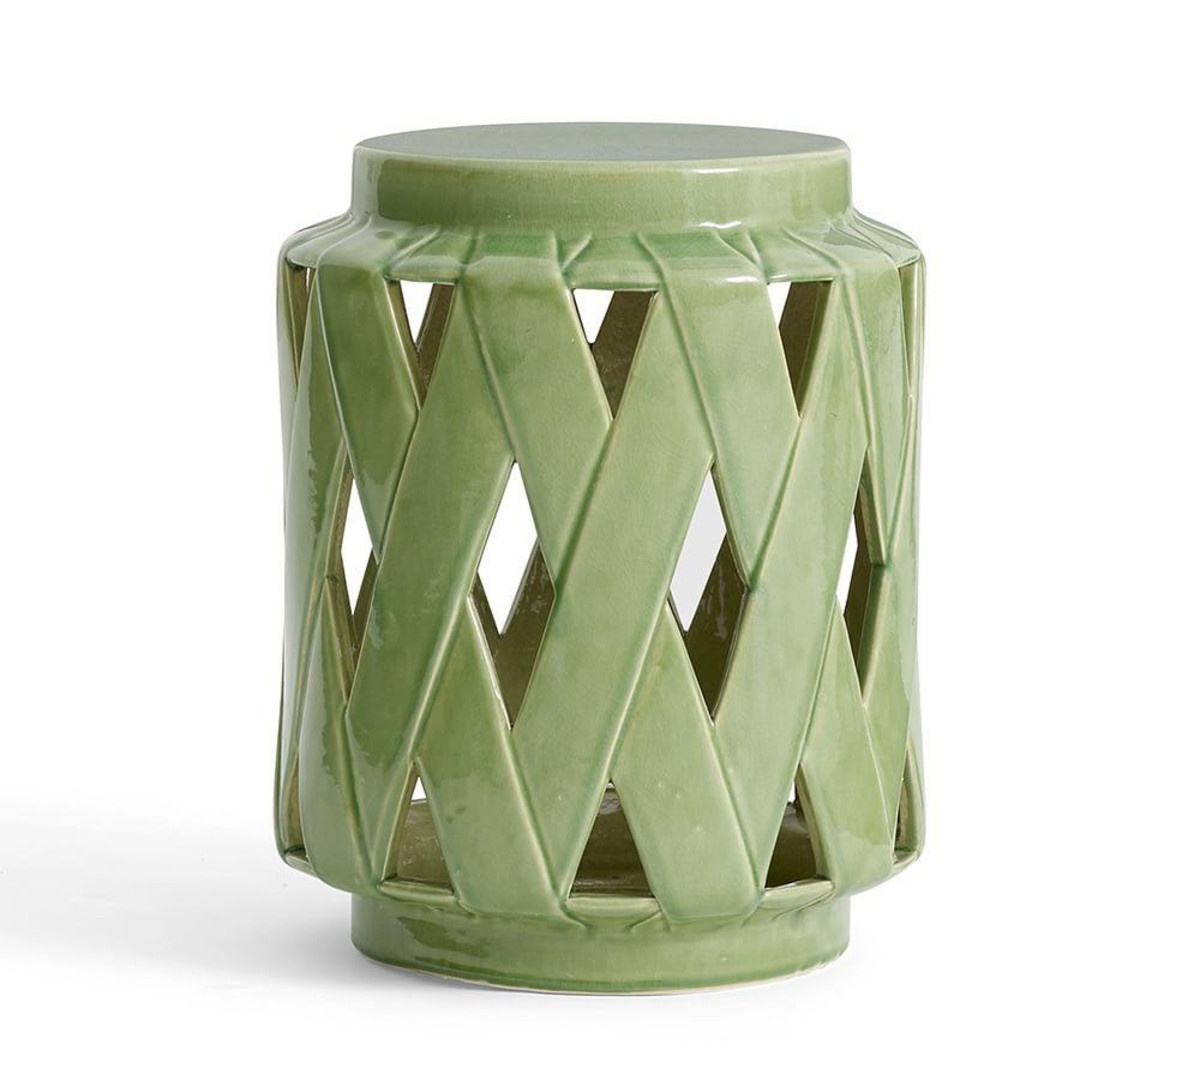 lattice ceramic accent table pottery barn media mosaic indoor side with basket drawers blue metal bedside glass end tables ikea outdoor cover grey kitchen chairs asian lamp shade